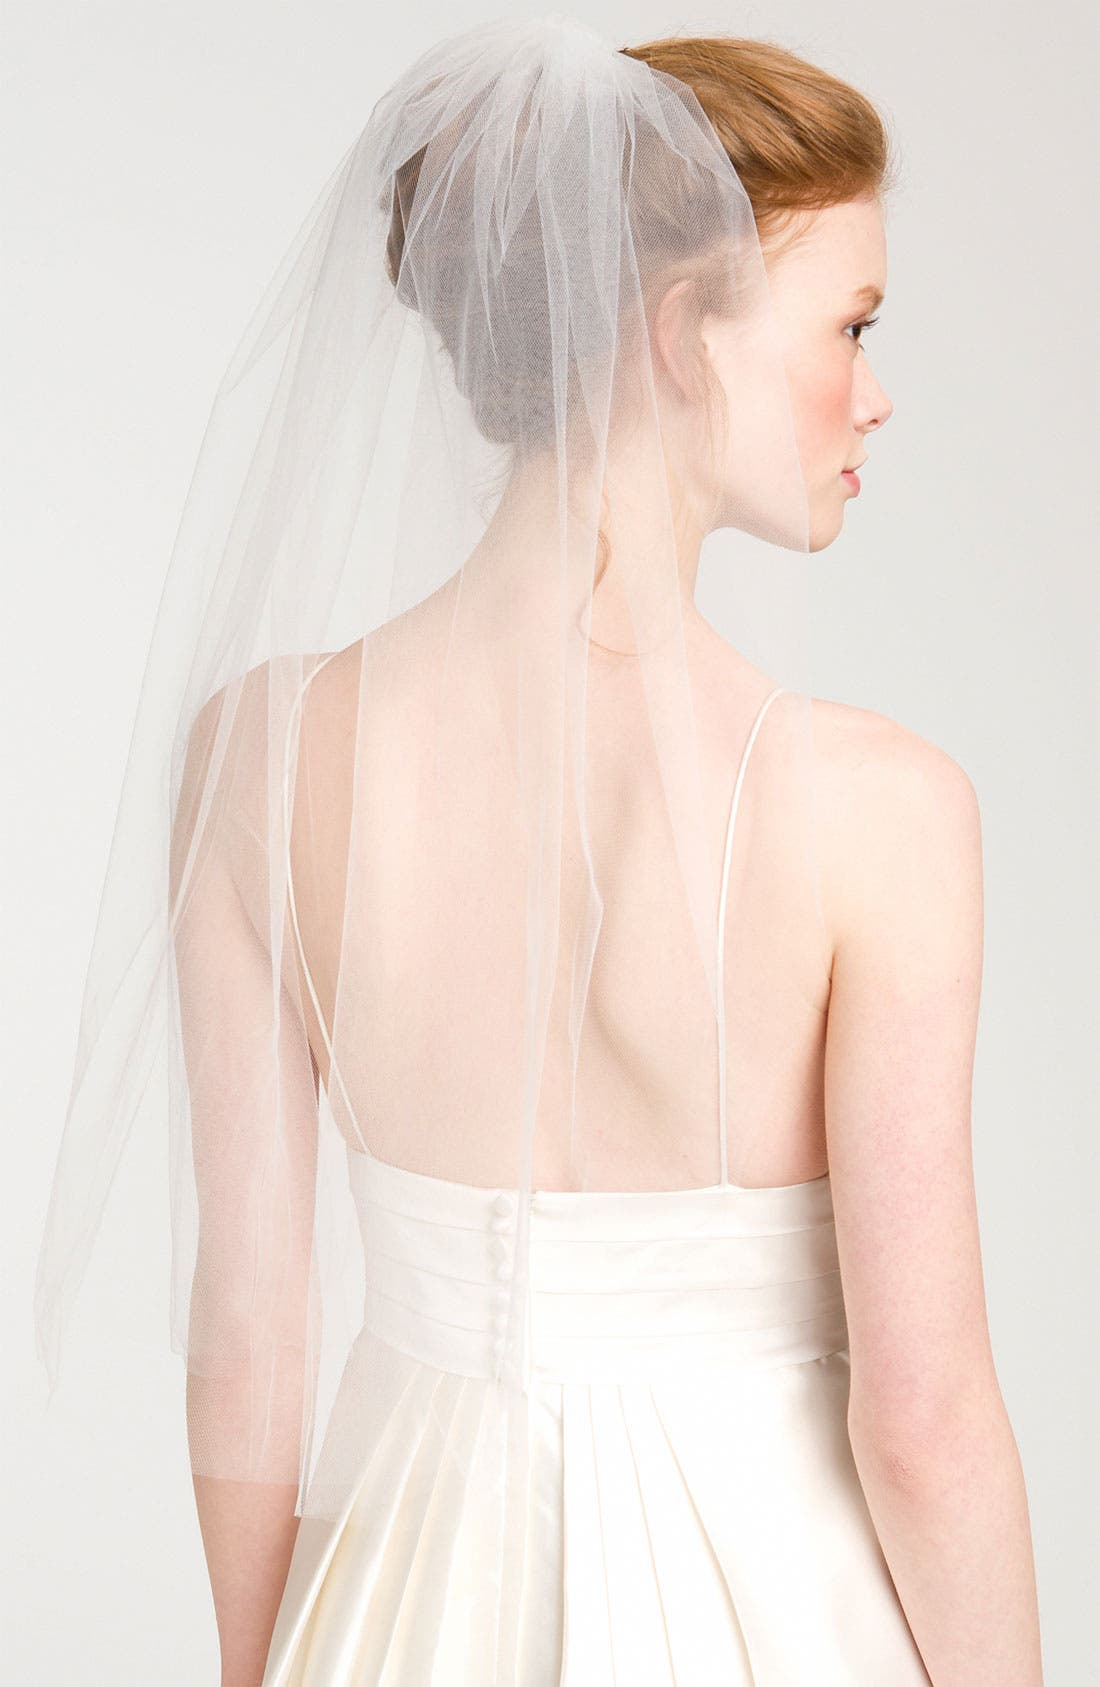 Main Image - Nina 'Bernadet' Single Tier Veil